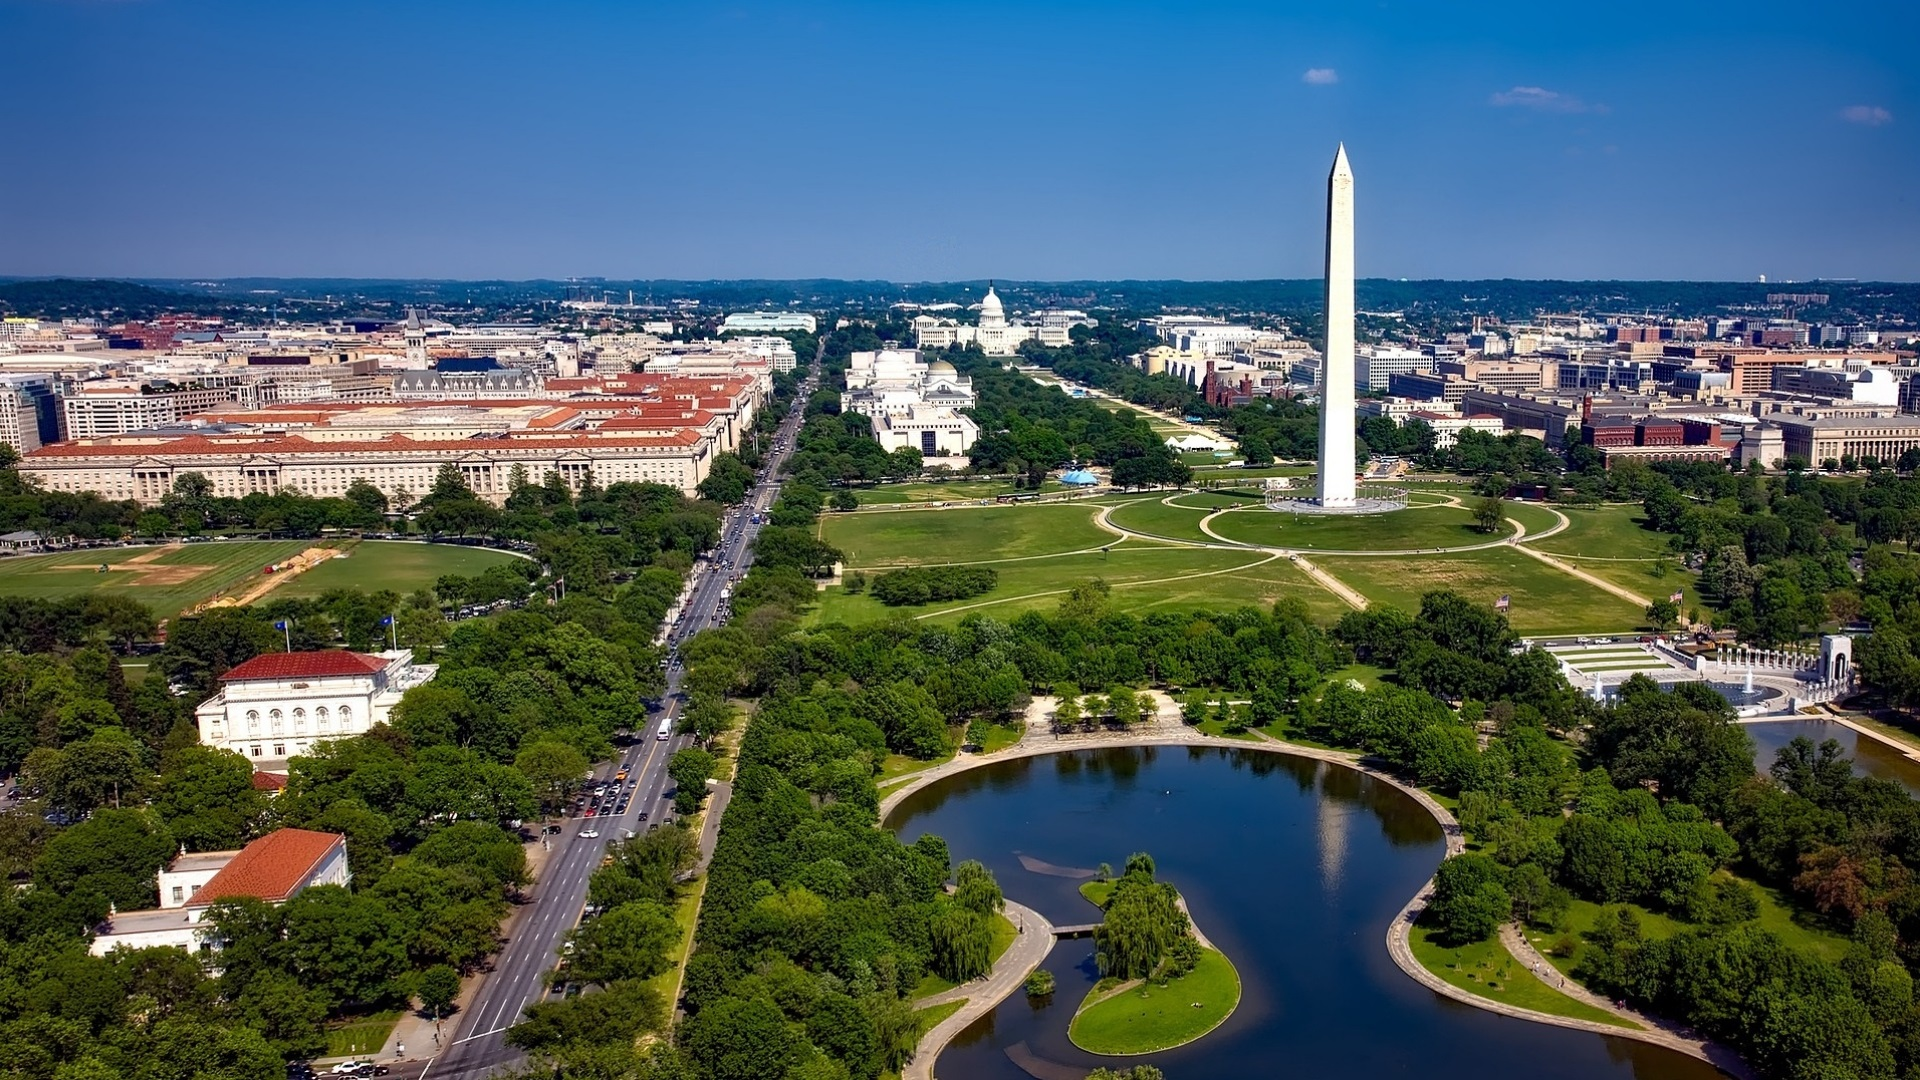 Aerial view of the National Mall in Washington, DC